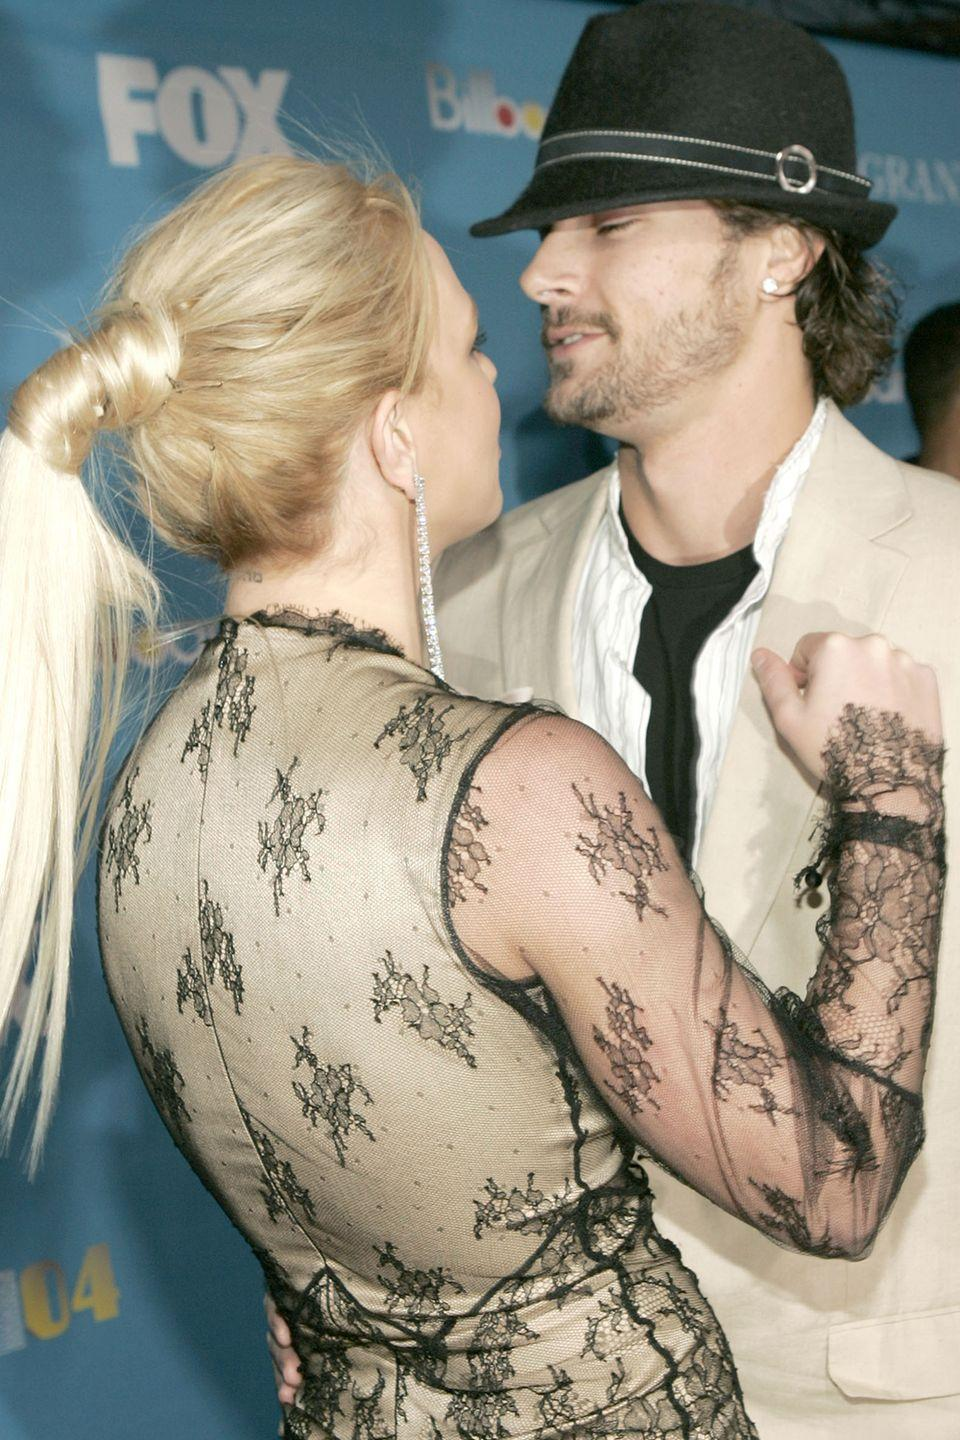 """<p>Oops, she did it again—and by it, we mean, had another tattoo mishap. If you look closely at <a href=""""http://www.smosh.com/smosh-pit/articles/8-celebrity-tattoo-disasters"""" rel=""""nofollow noopener"""" target=""""_blank"""" data-ylk=""""slk:the back of Spears' neck"""" class=""""link rapid-noclick-resp"""">the back of Spears' neck</a>, you can see a small tattoo near her hairline. It was supposed to say """"God"""" in Hebrew, but was reportedly misspelled and removed later.</p>"""